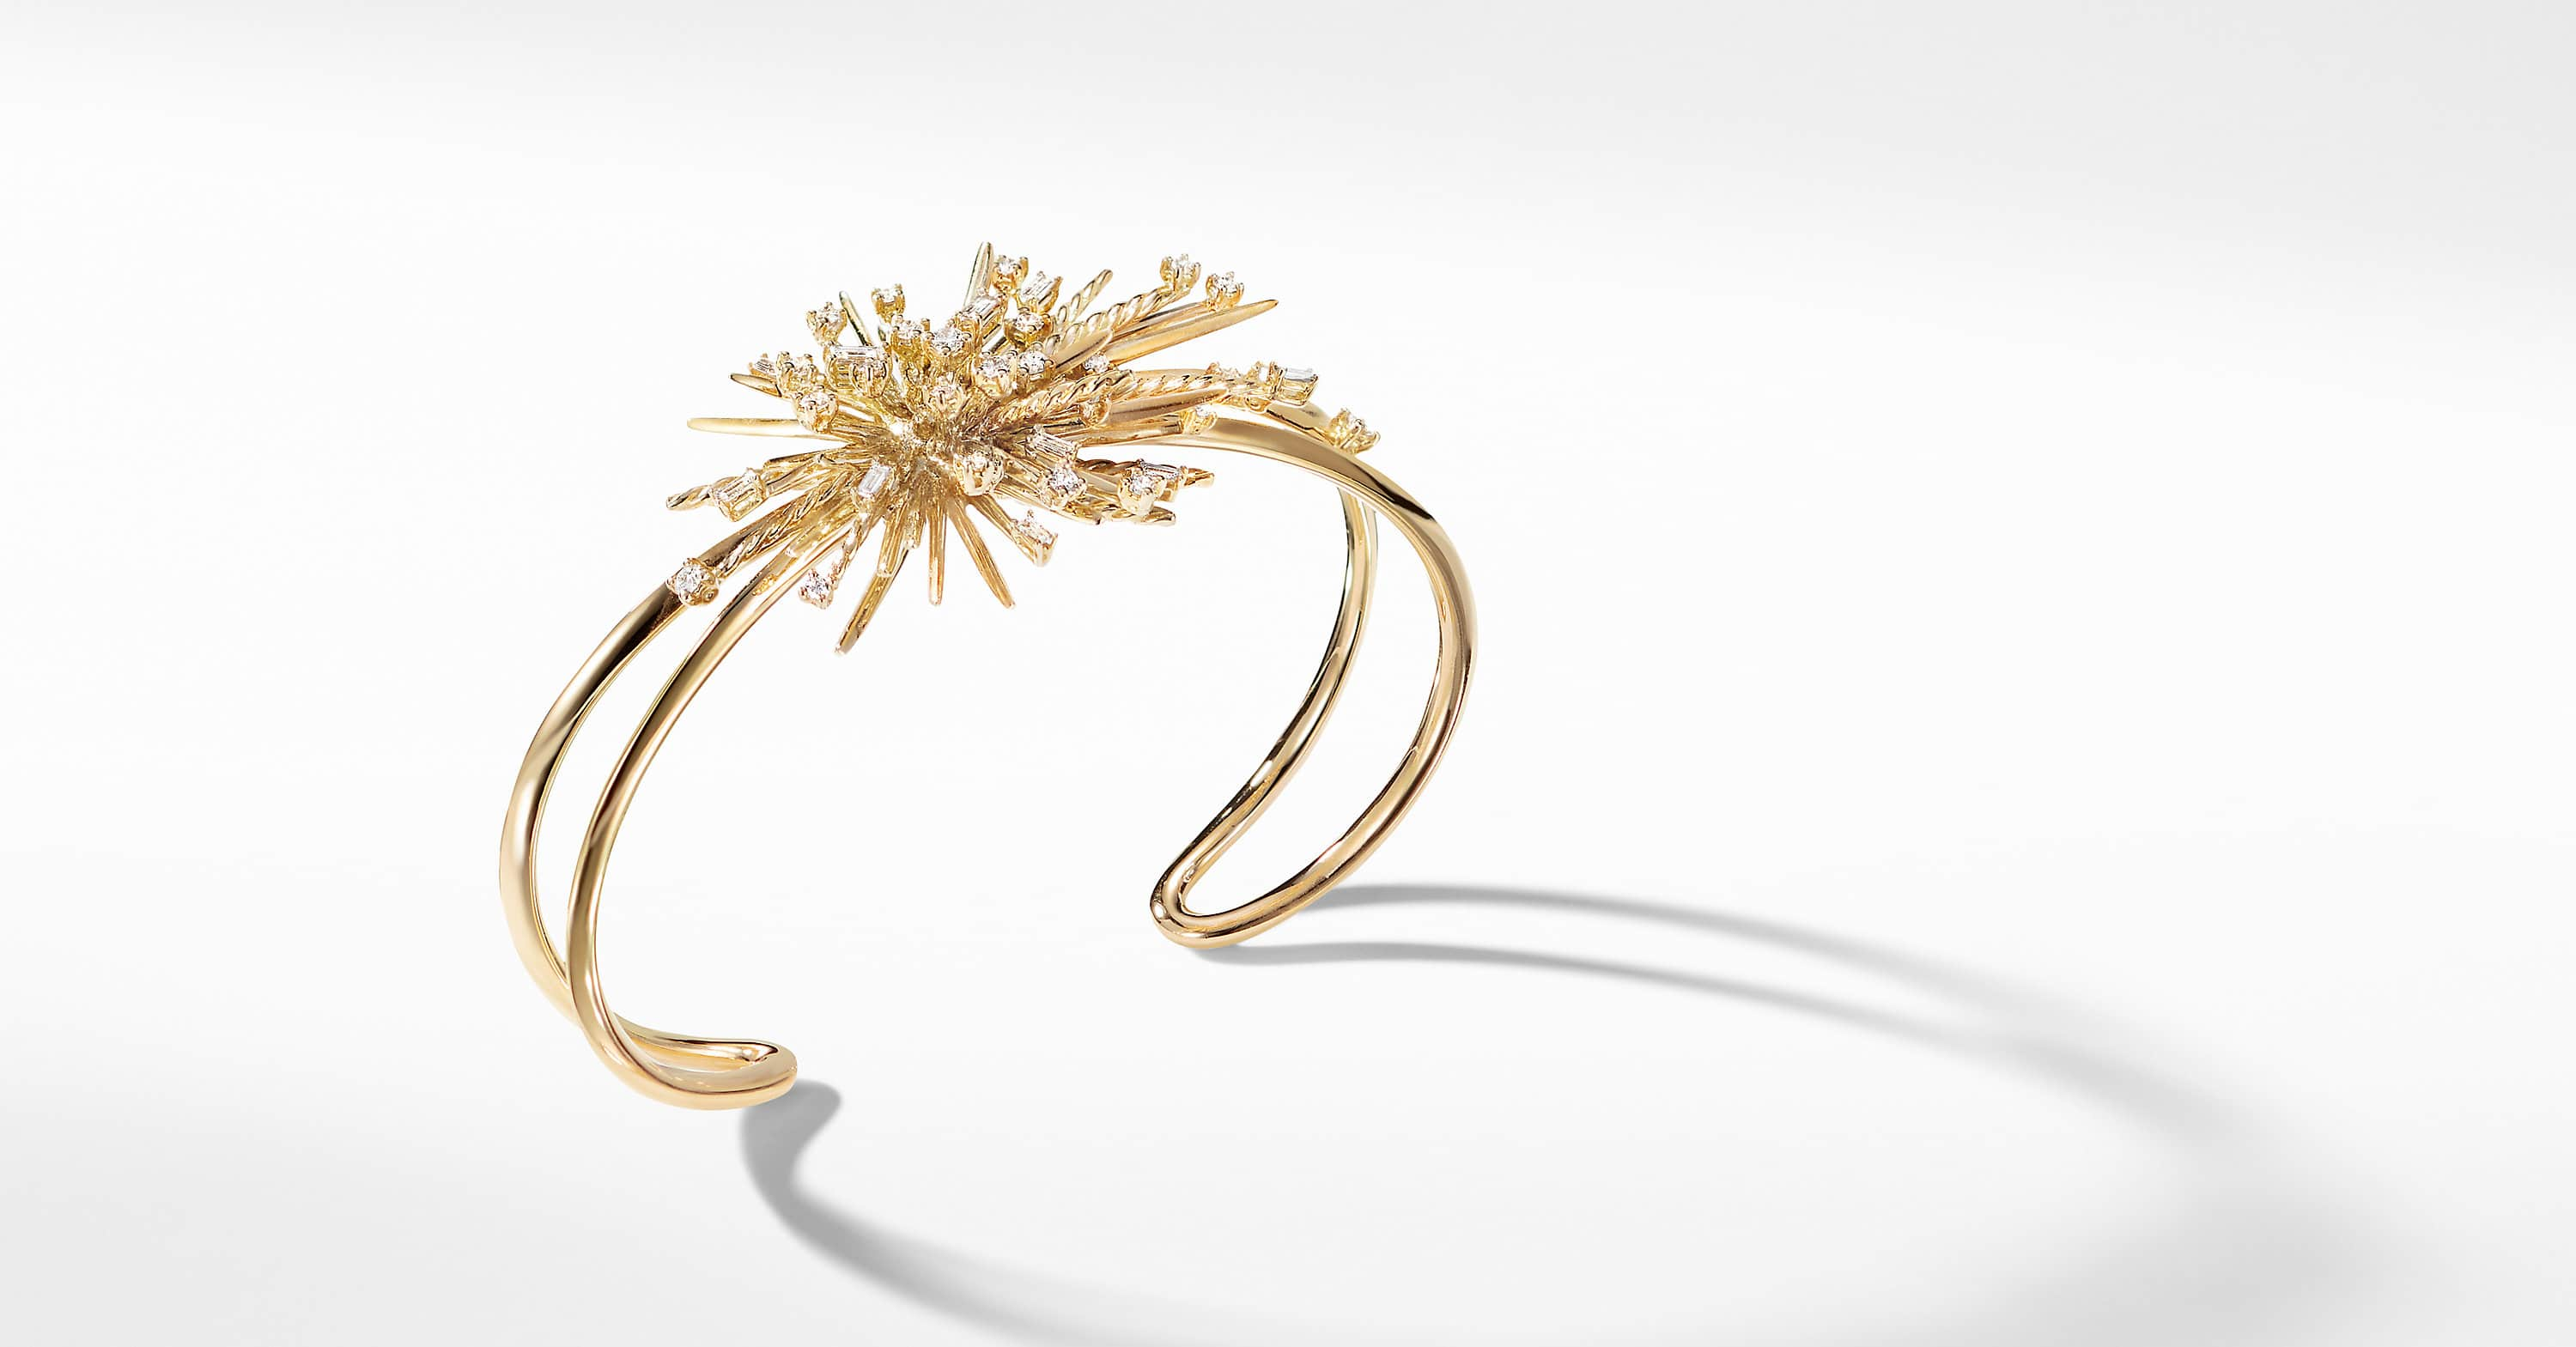 Supernova Cuff Bracelet with Diamonds in 18K Gold